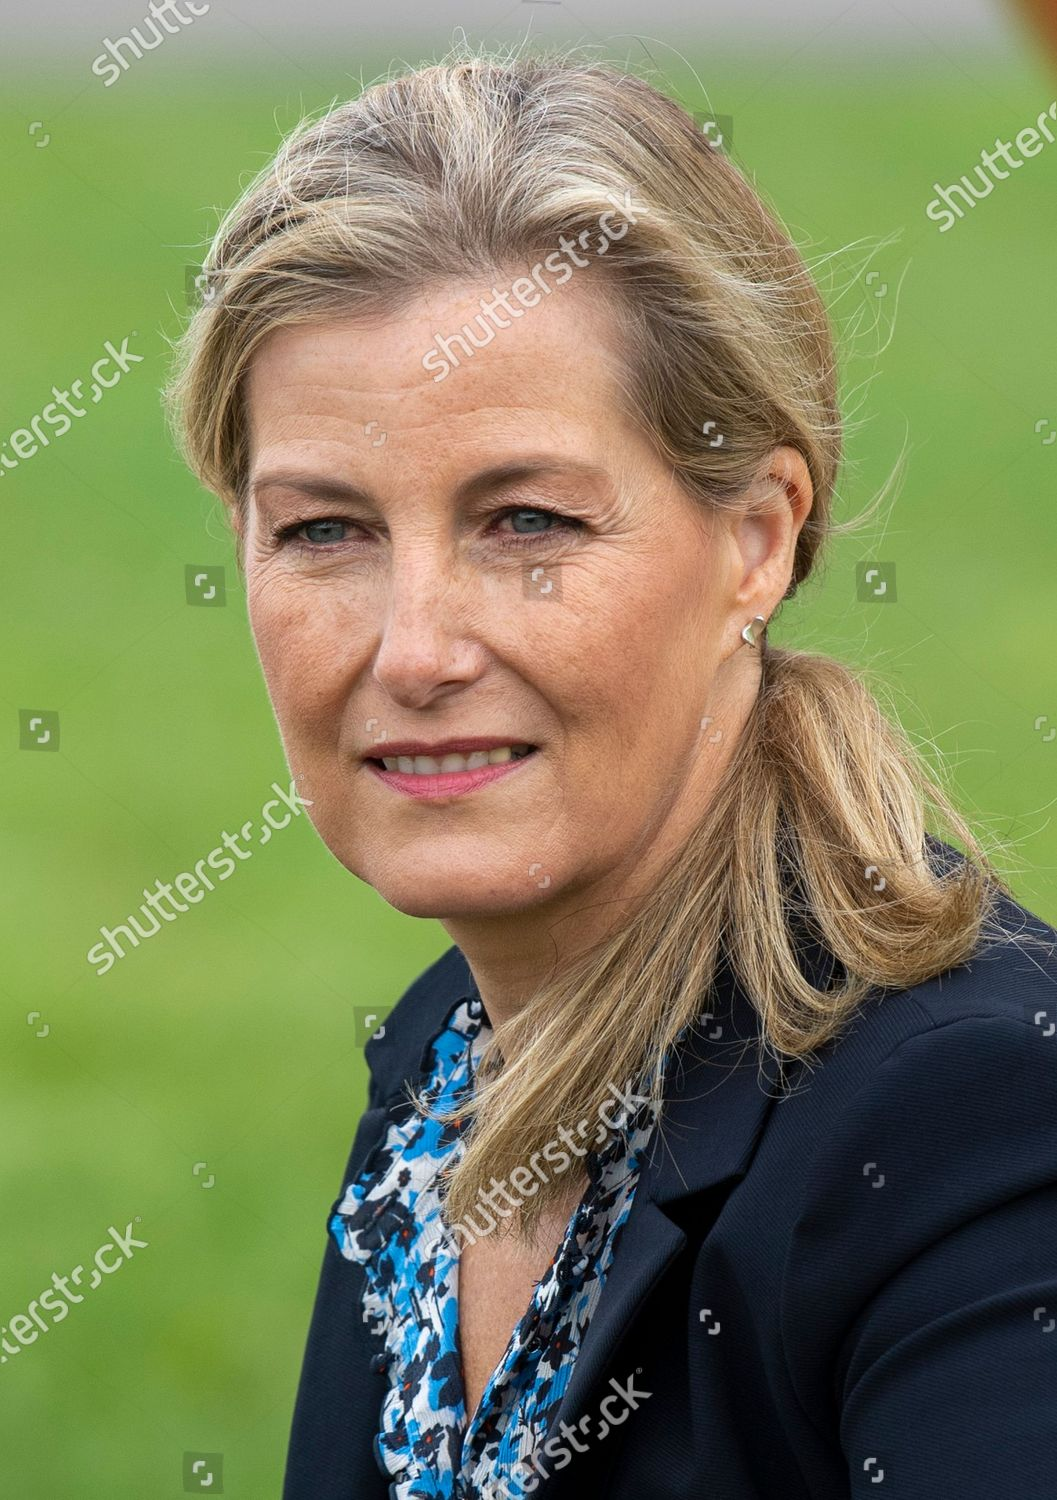 sophie-countess-of-wessex-visit-to-thames-valley-air-ambulance-white-waltham-airfield-maidenhead-uk-shutterstock-editorial-10764511i.jpg